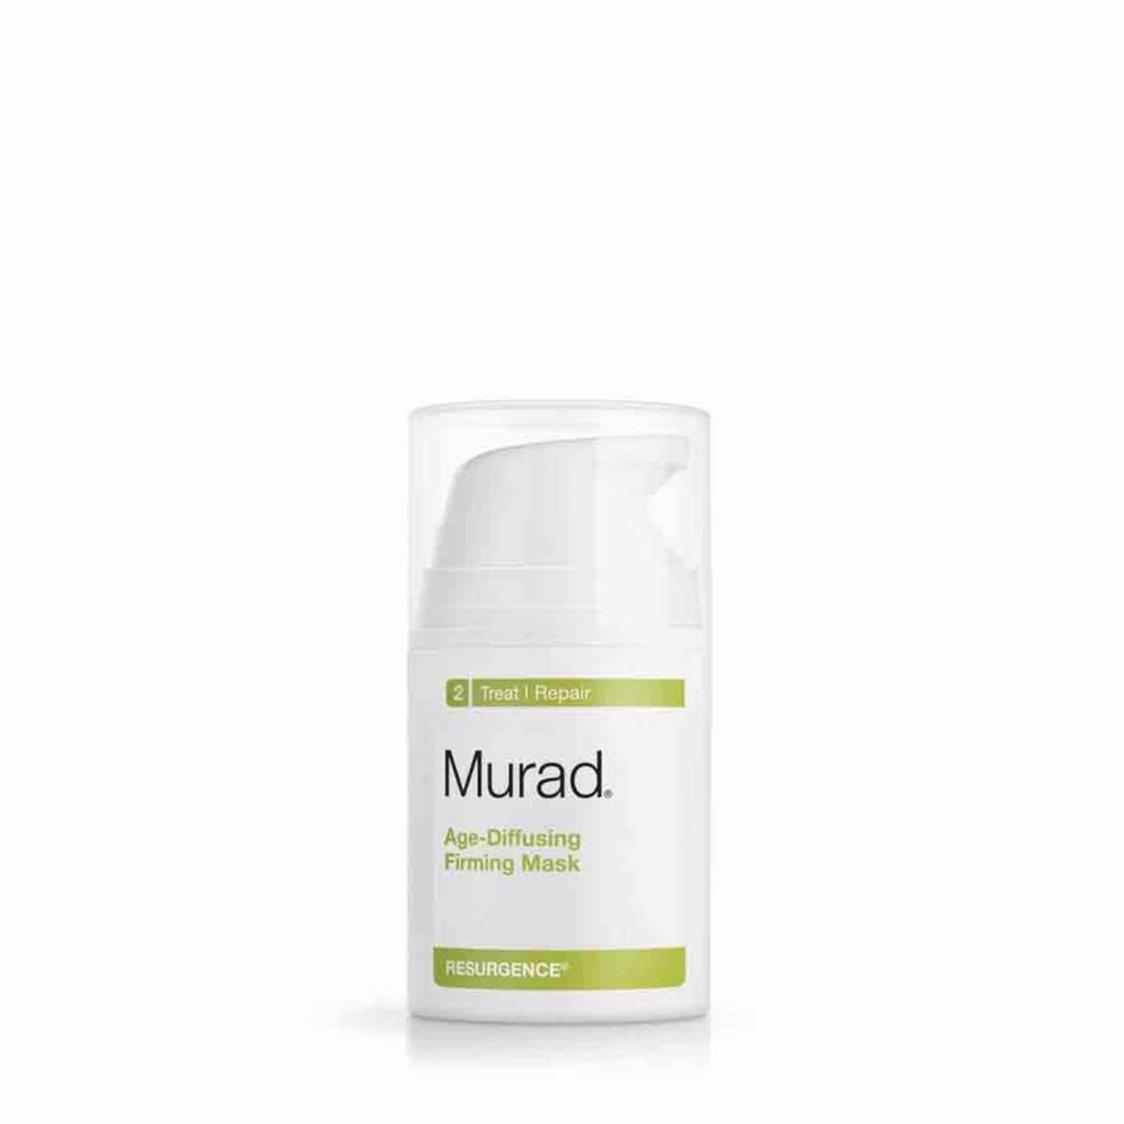 Age-Diffusing Firming Mask 50ml